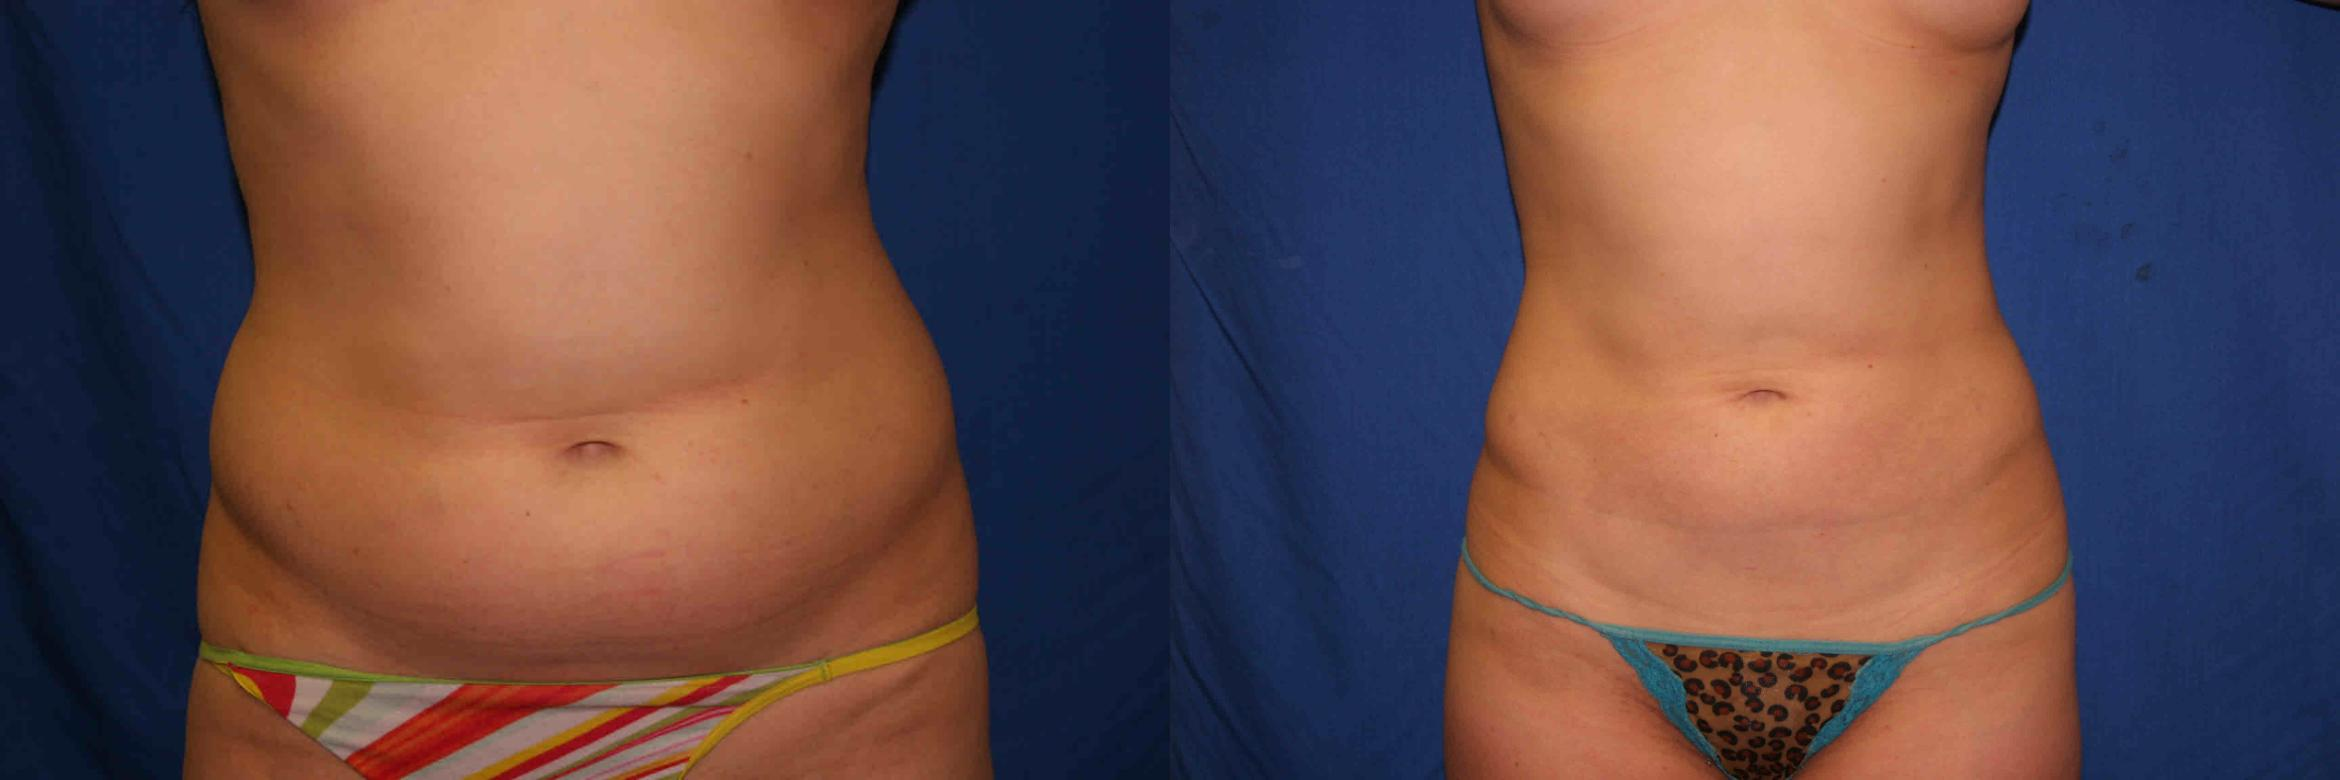 Liposuction Case 1 Before & After View #1 | Palo Alto, CA | Daryl K. Hoffman, MD